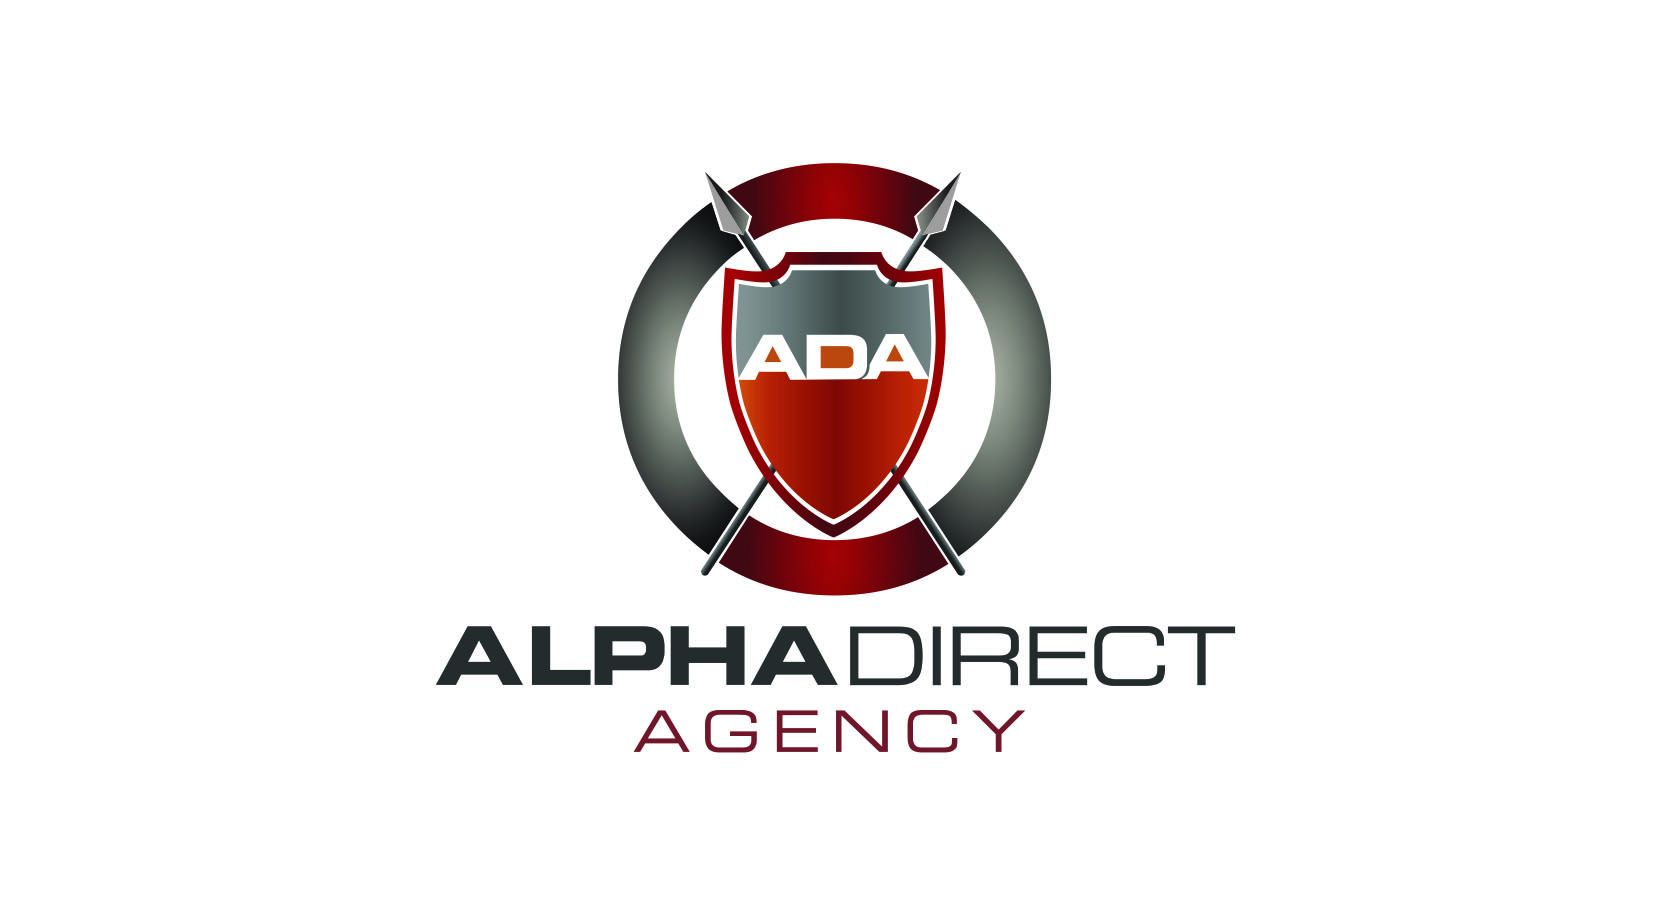 Alpha Direct Agency LLC